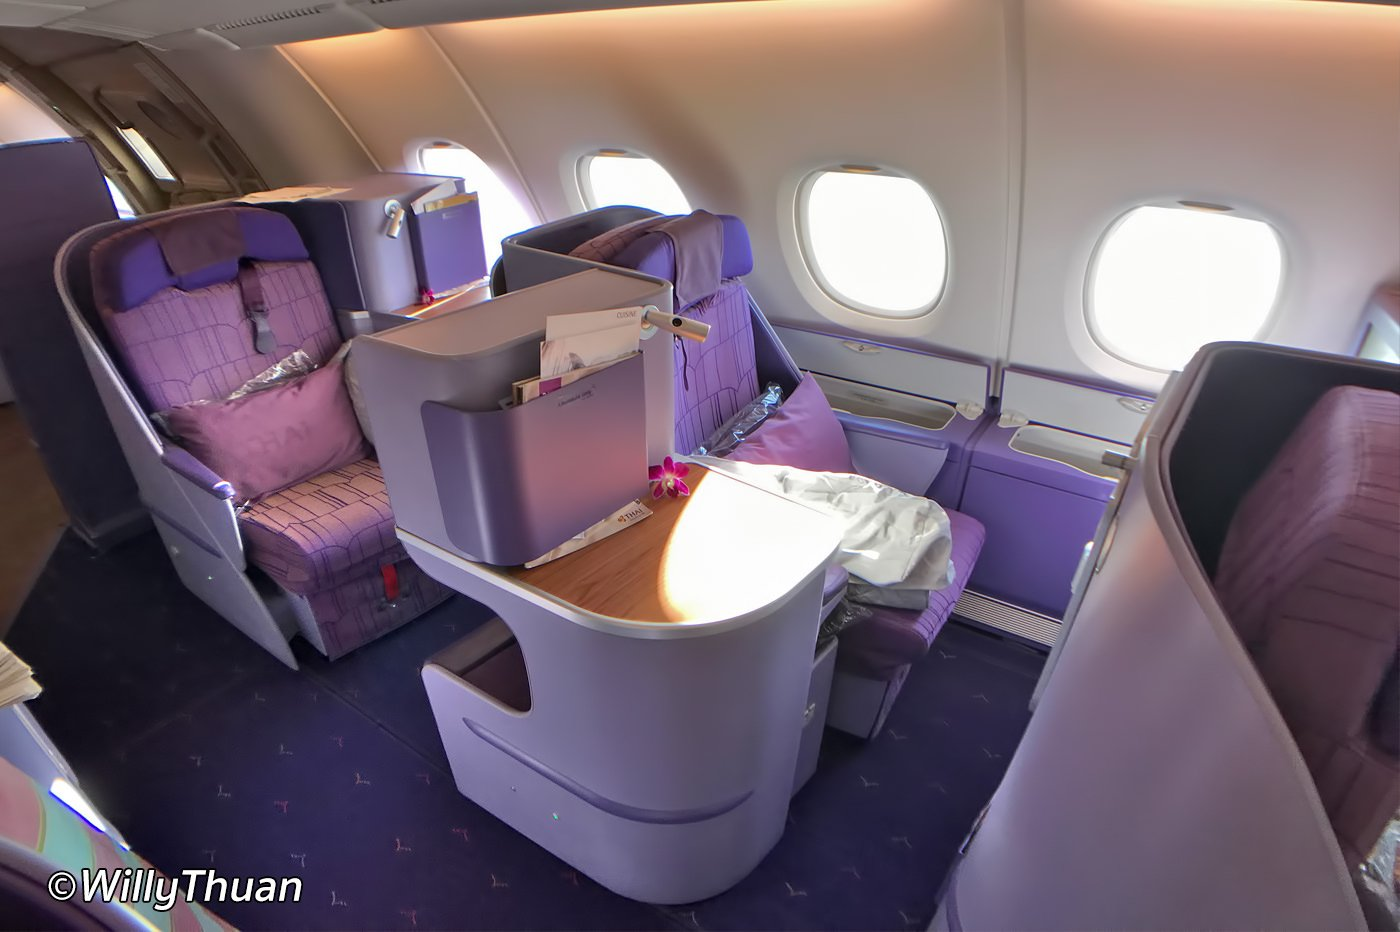 Flying Business Class on Thai Airways